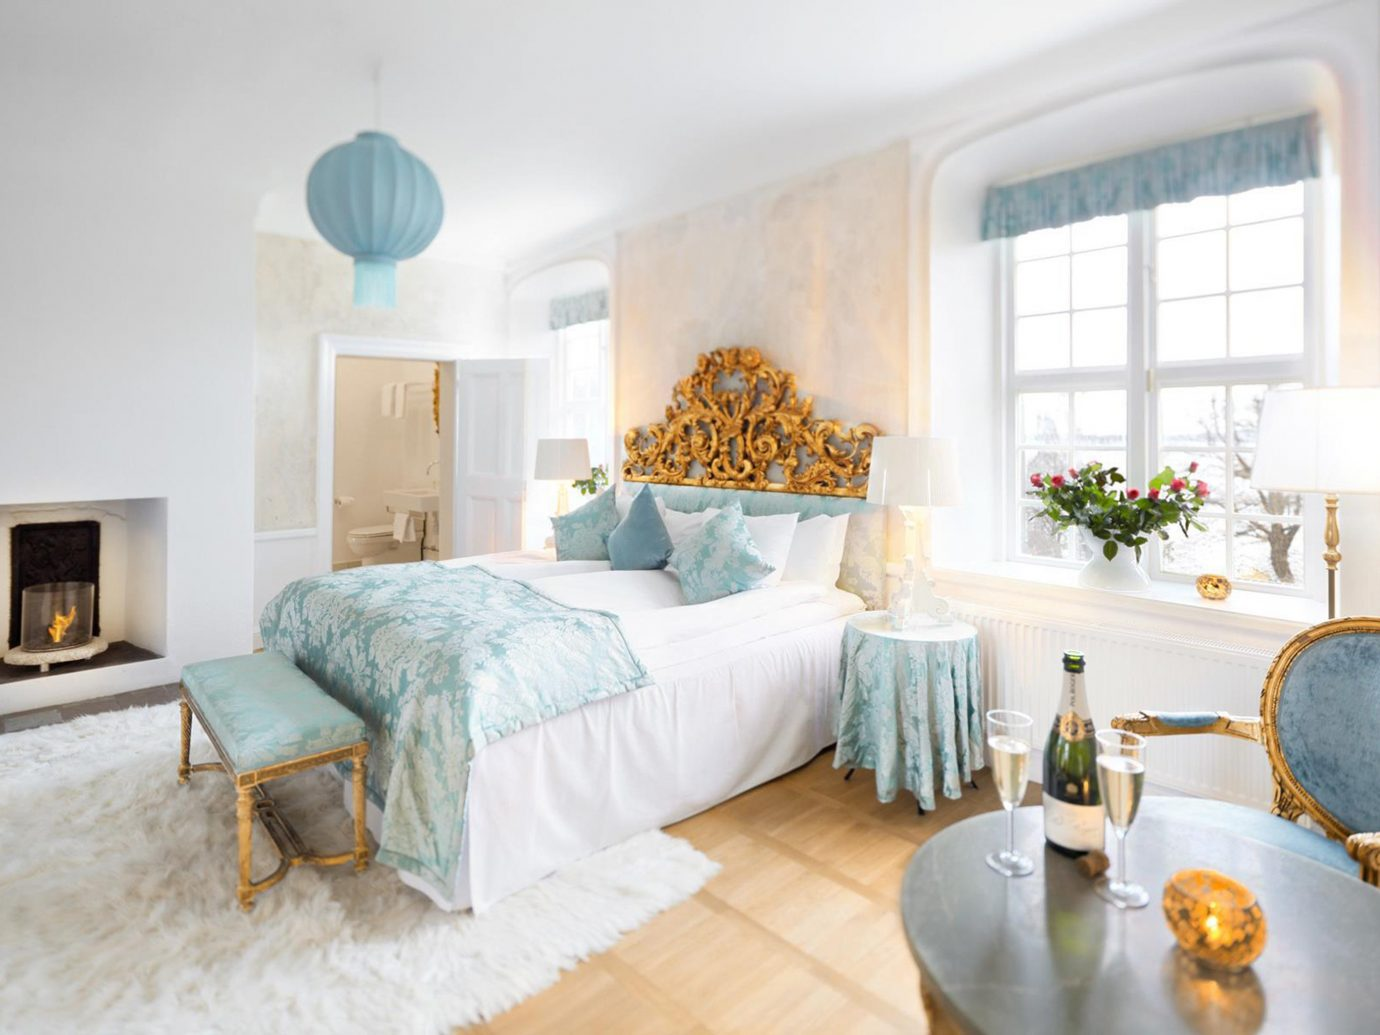 Denmark Finland Hotels Landmarks Luxury Travel Sweden indoor floor wall window room property estate Bedroom living room home real estate cottage Suite interior design Villa farmhouse apartment furniture decorated